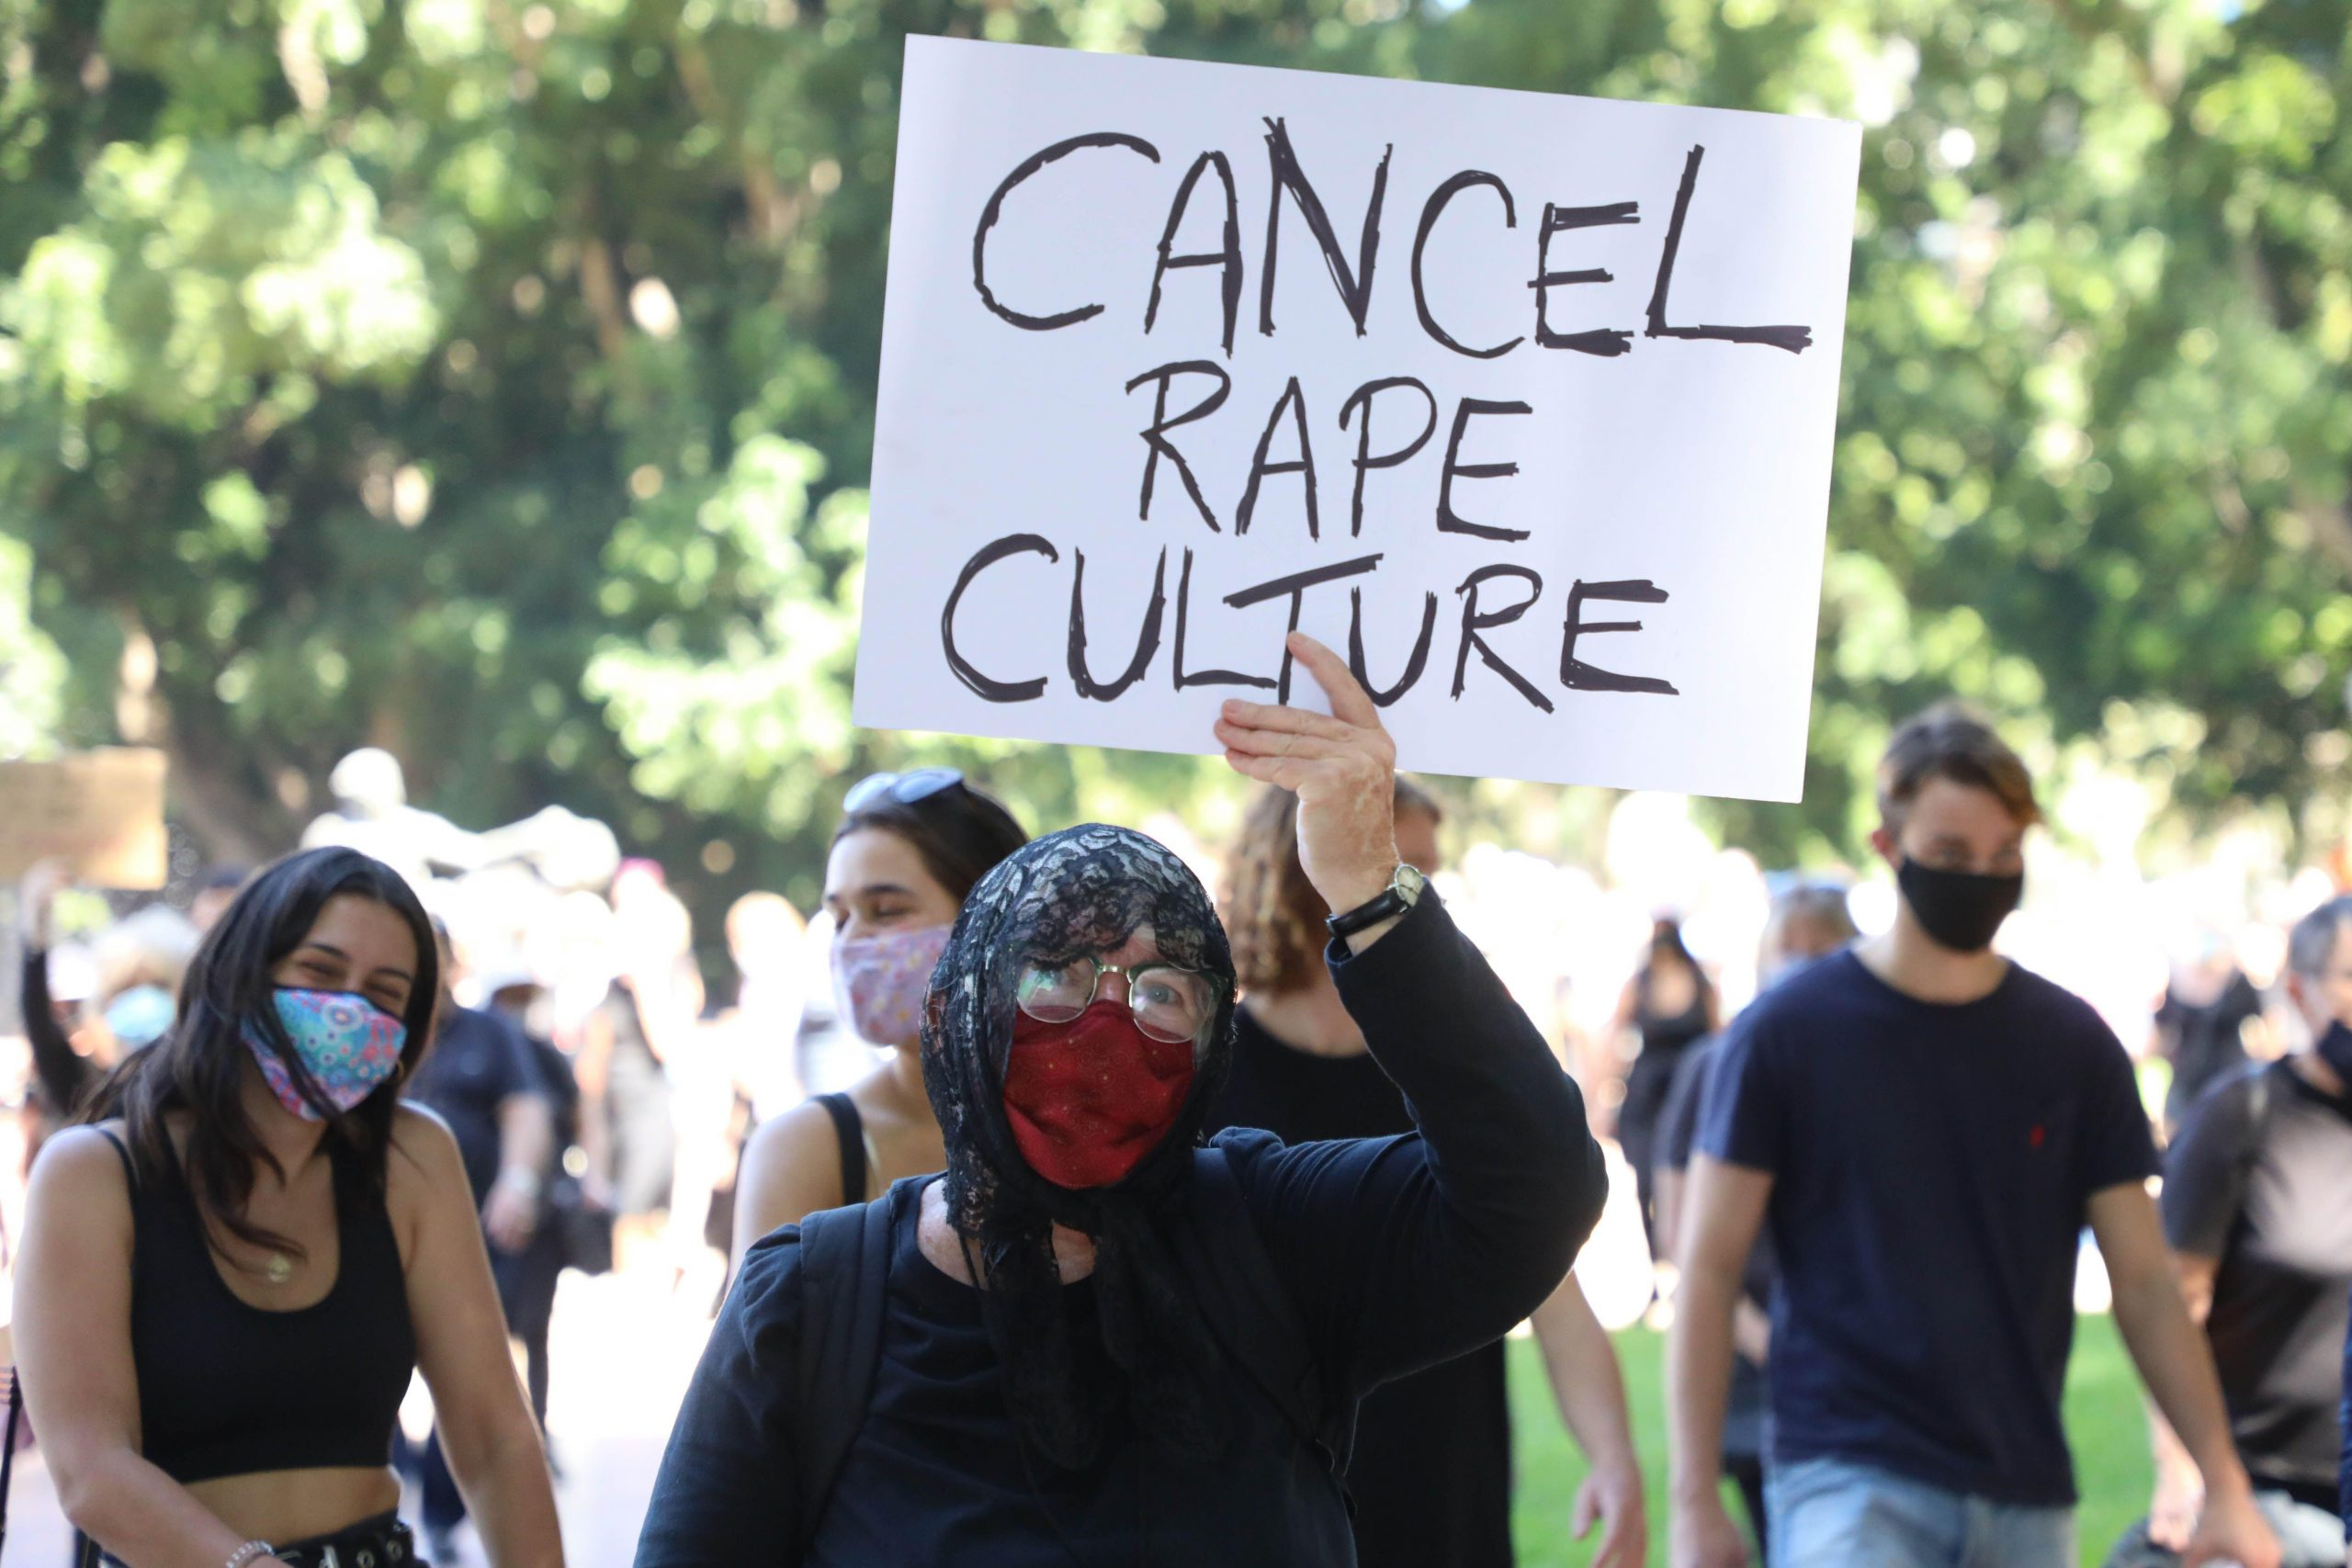 Masked protestor in black hoodie holds up card at protest that says 'CANCEL RAPE CULTURE'